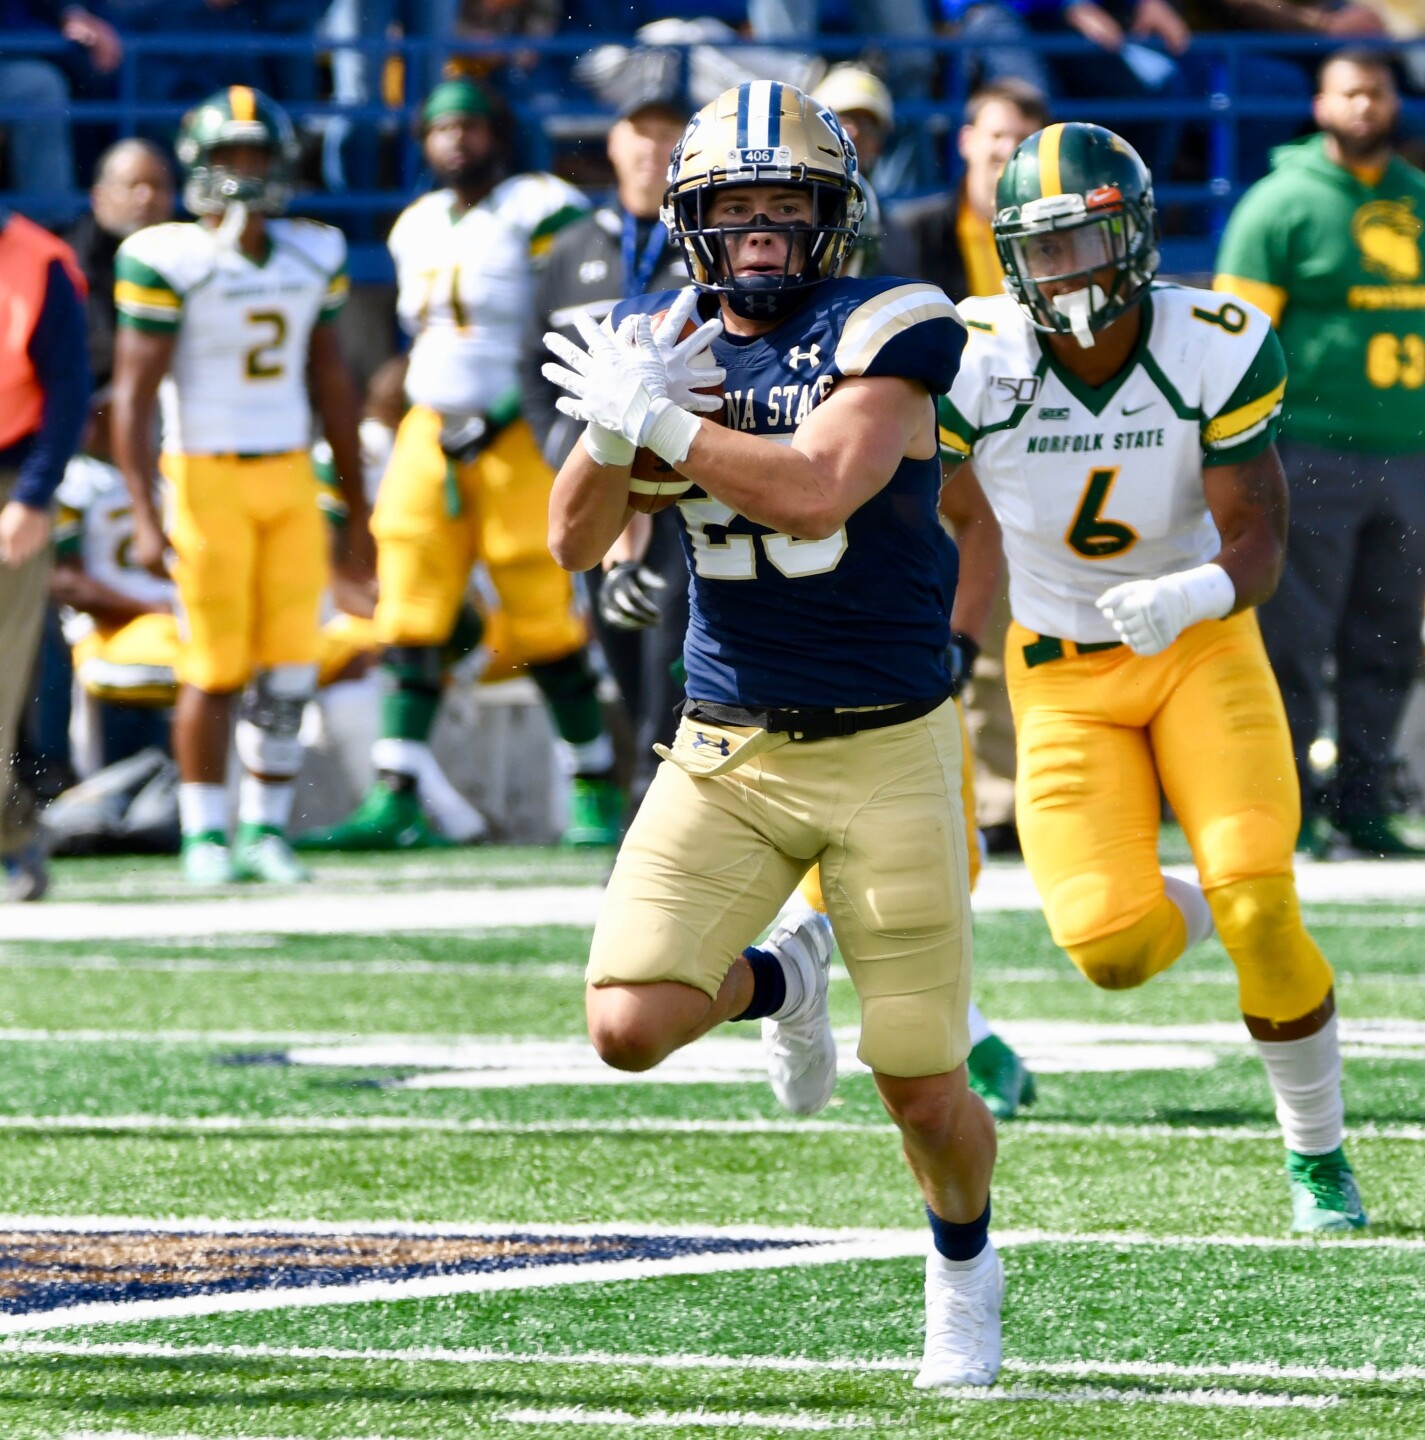 Norfolk State at Montana State - Sept. 21, 2019